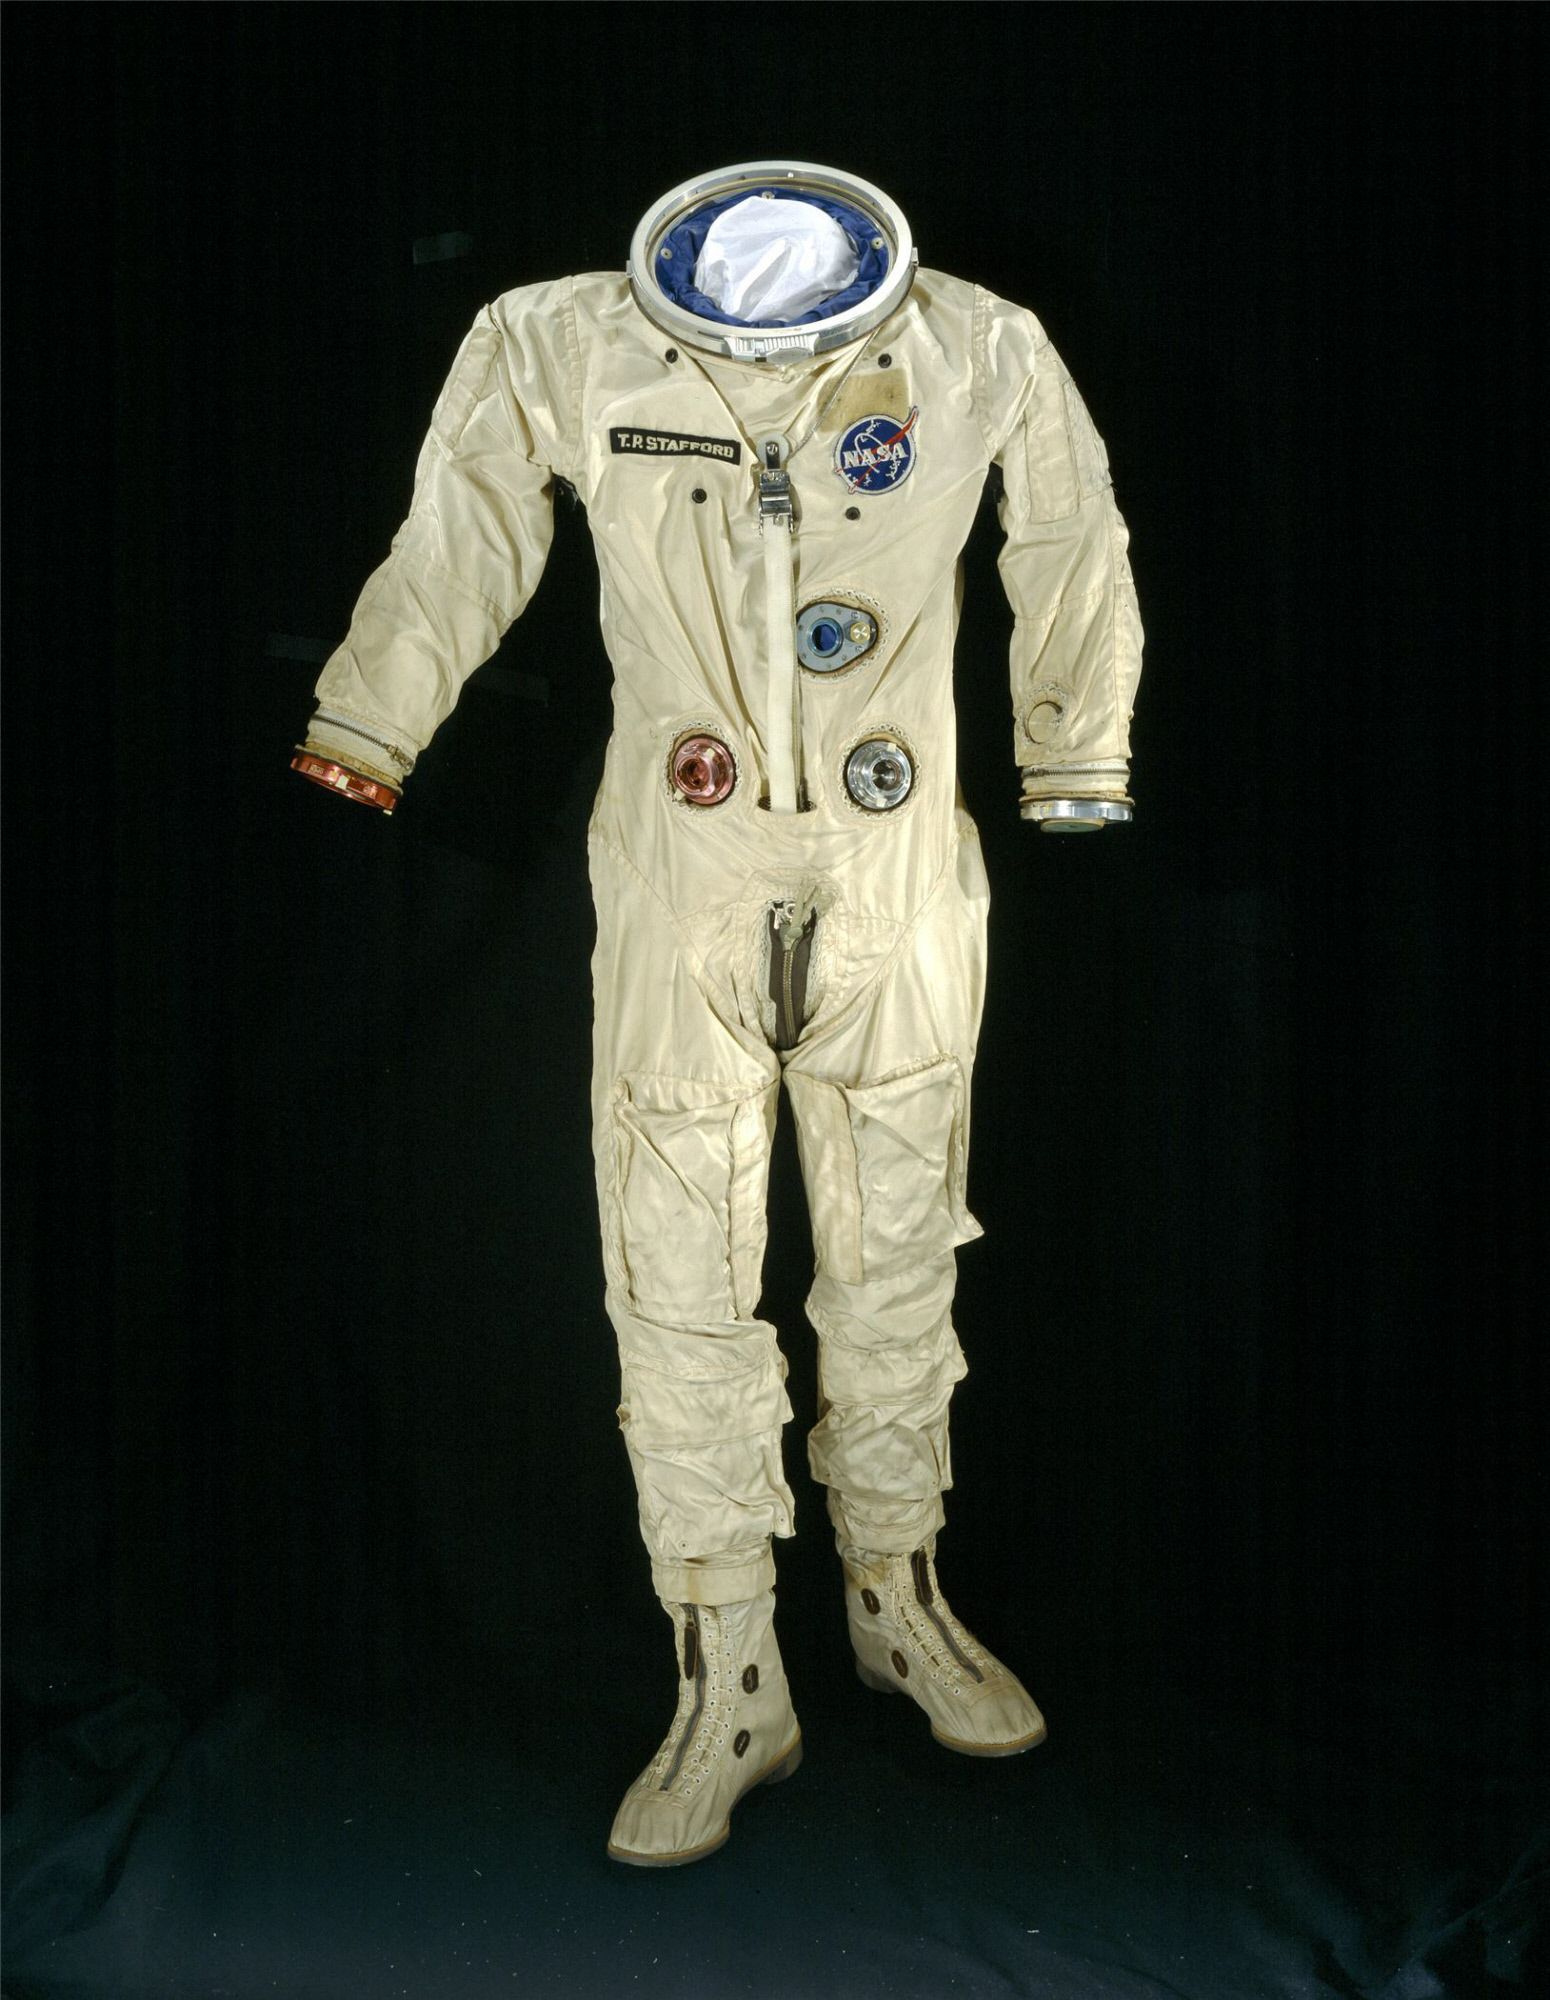 small resolution of thomas p stafford wore this spacesuit on gemini ix a mission launched june 3 1966